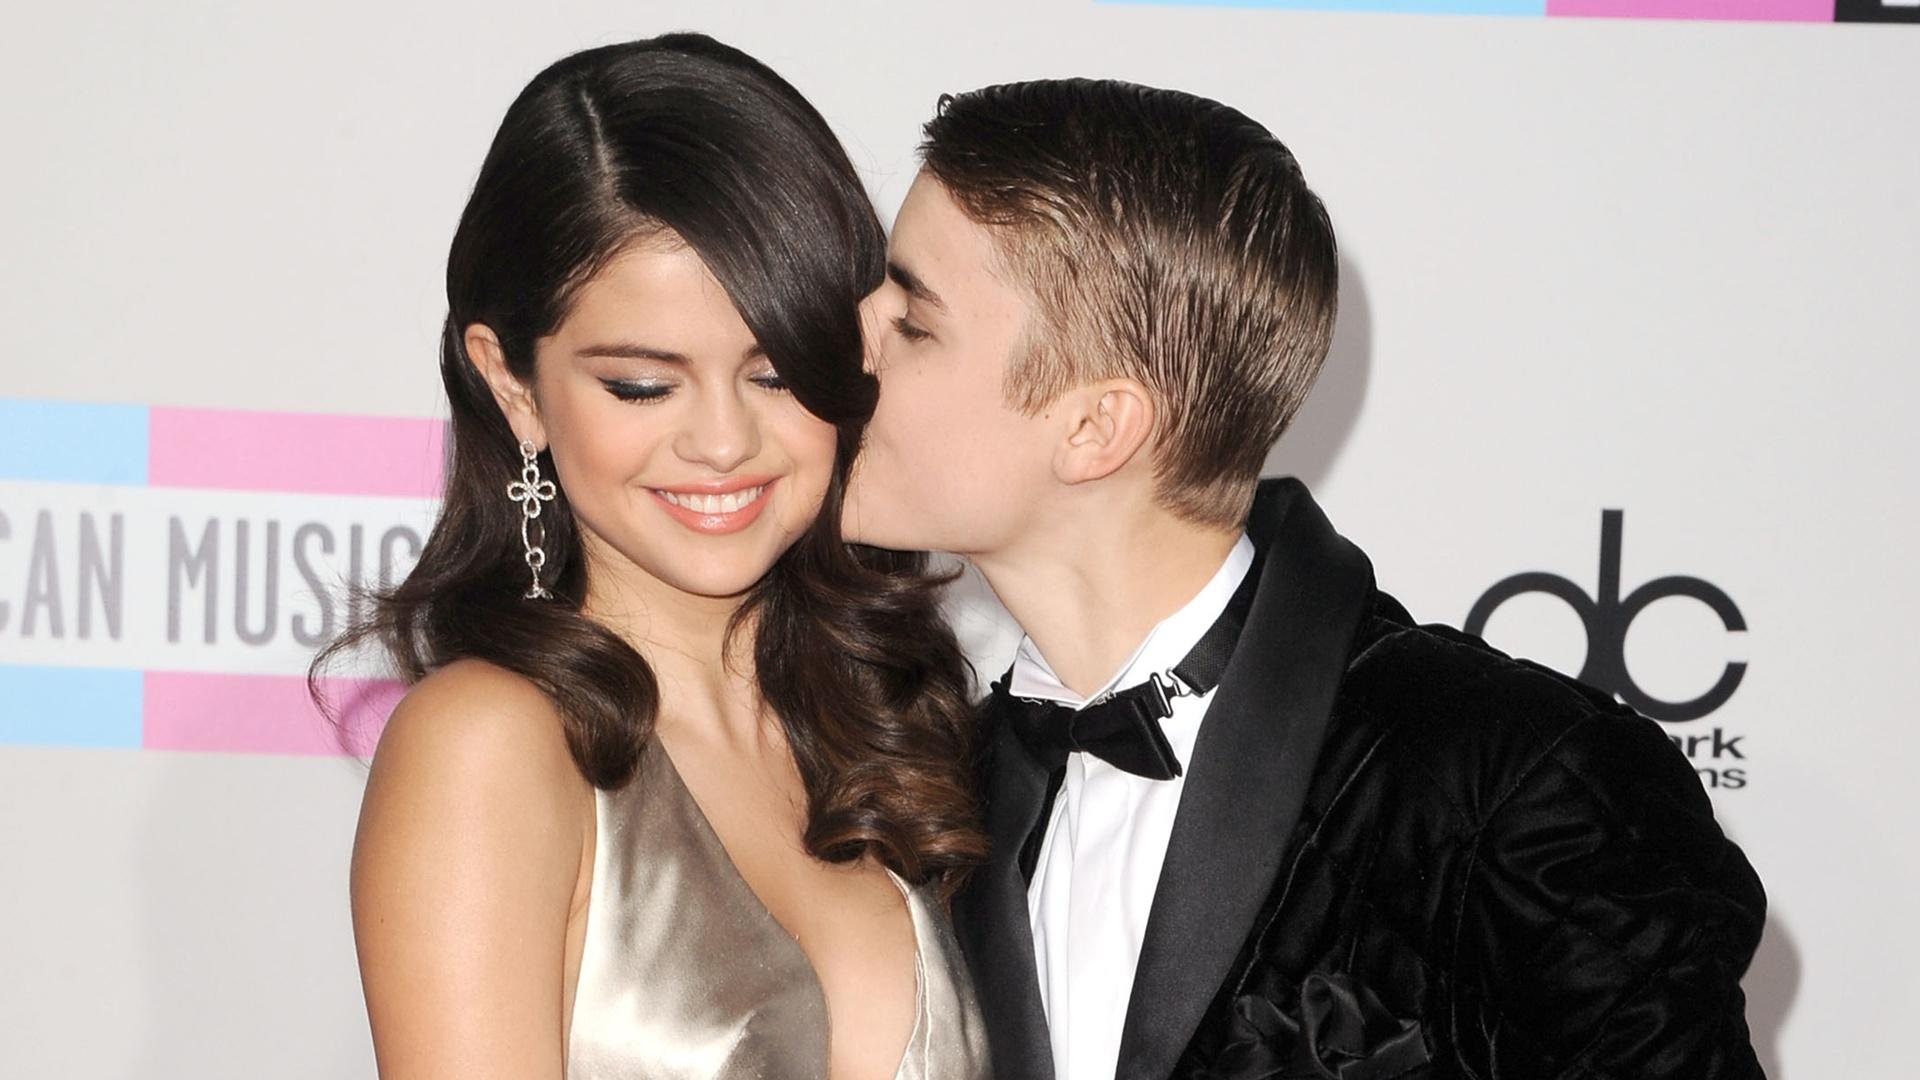 Precious Throwback Moments of Justin Bieber & Selena Gomez